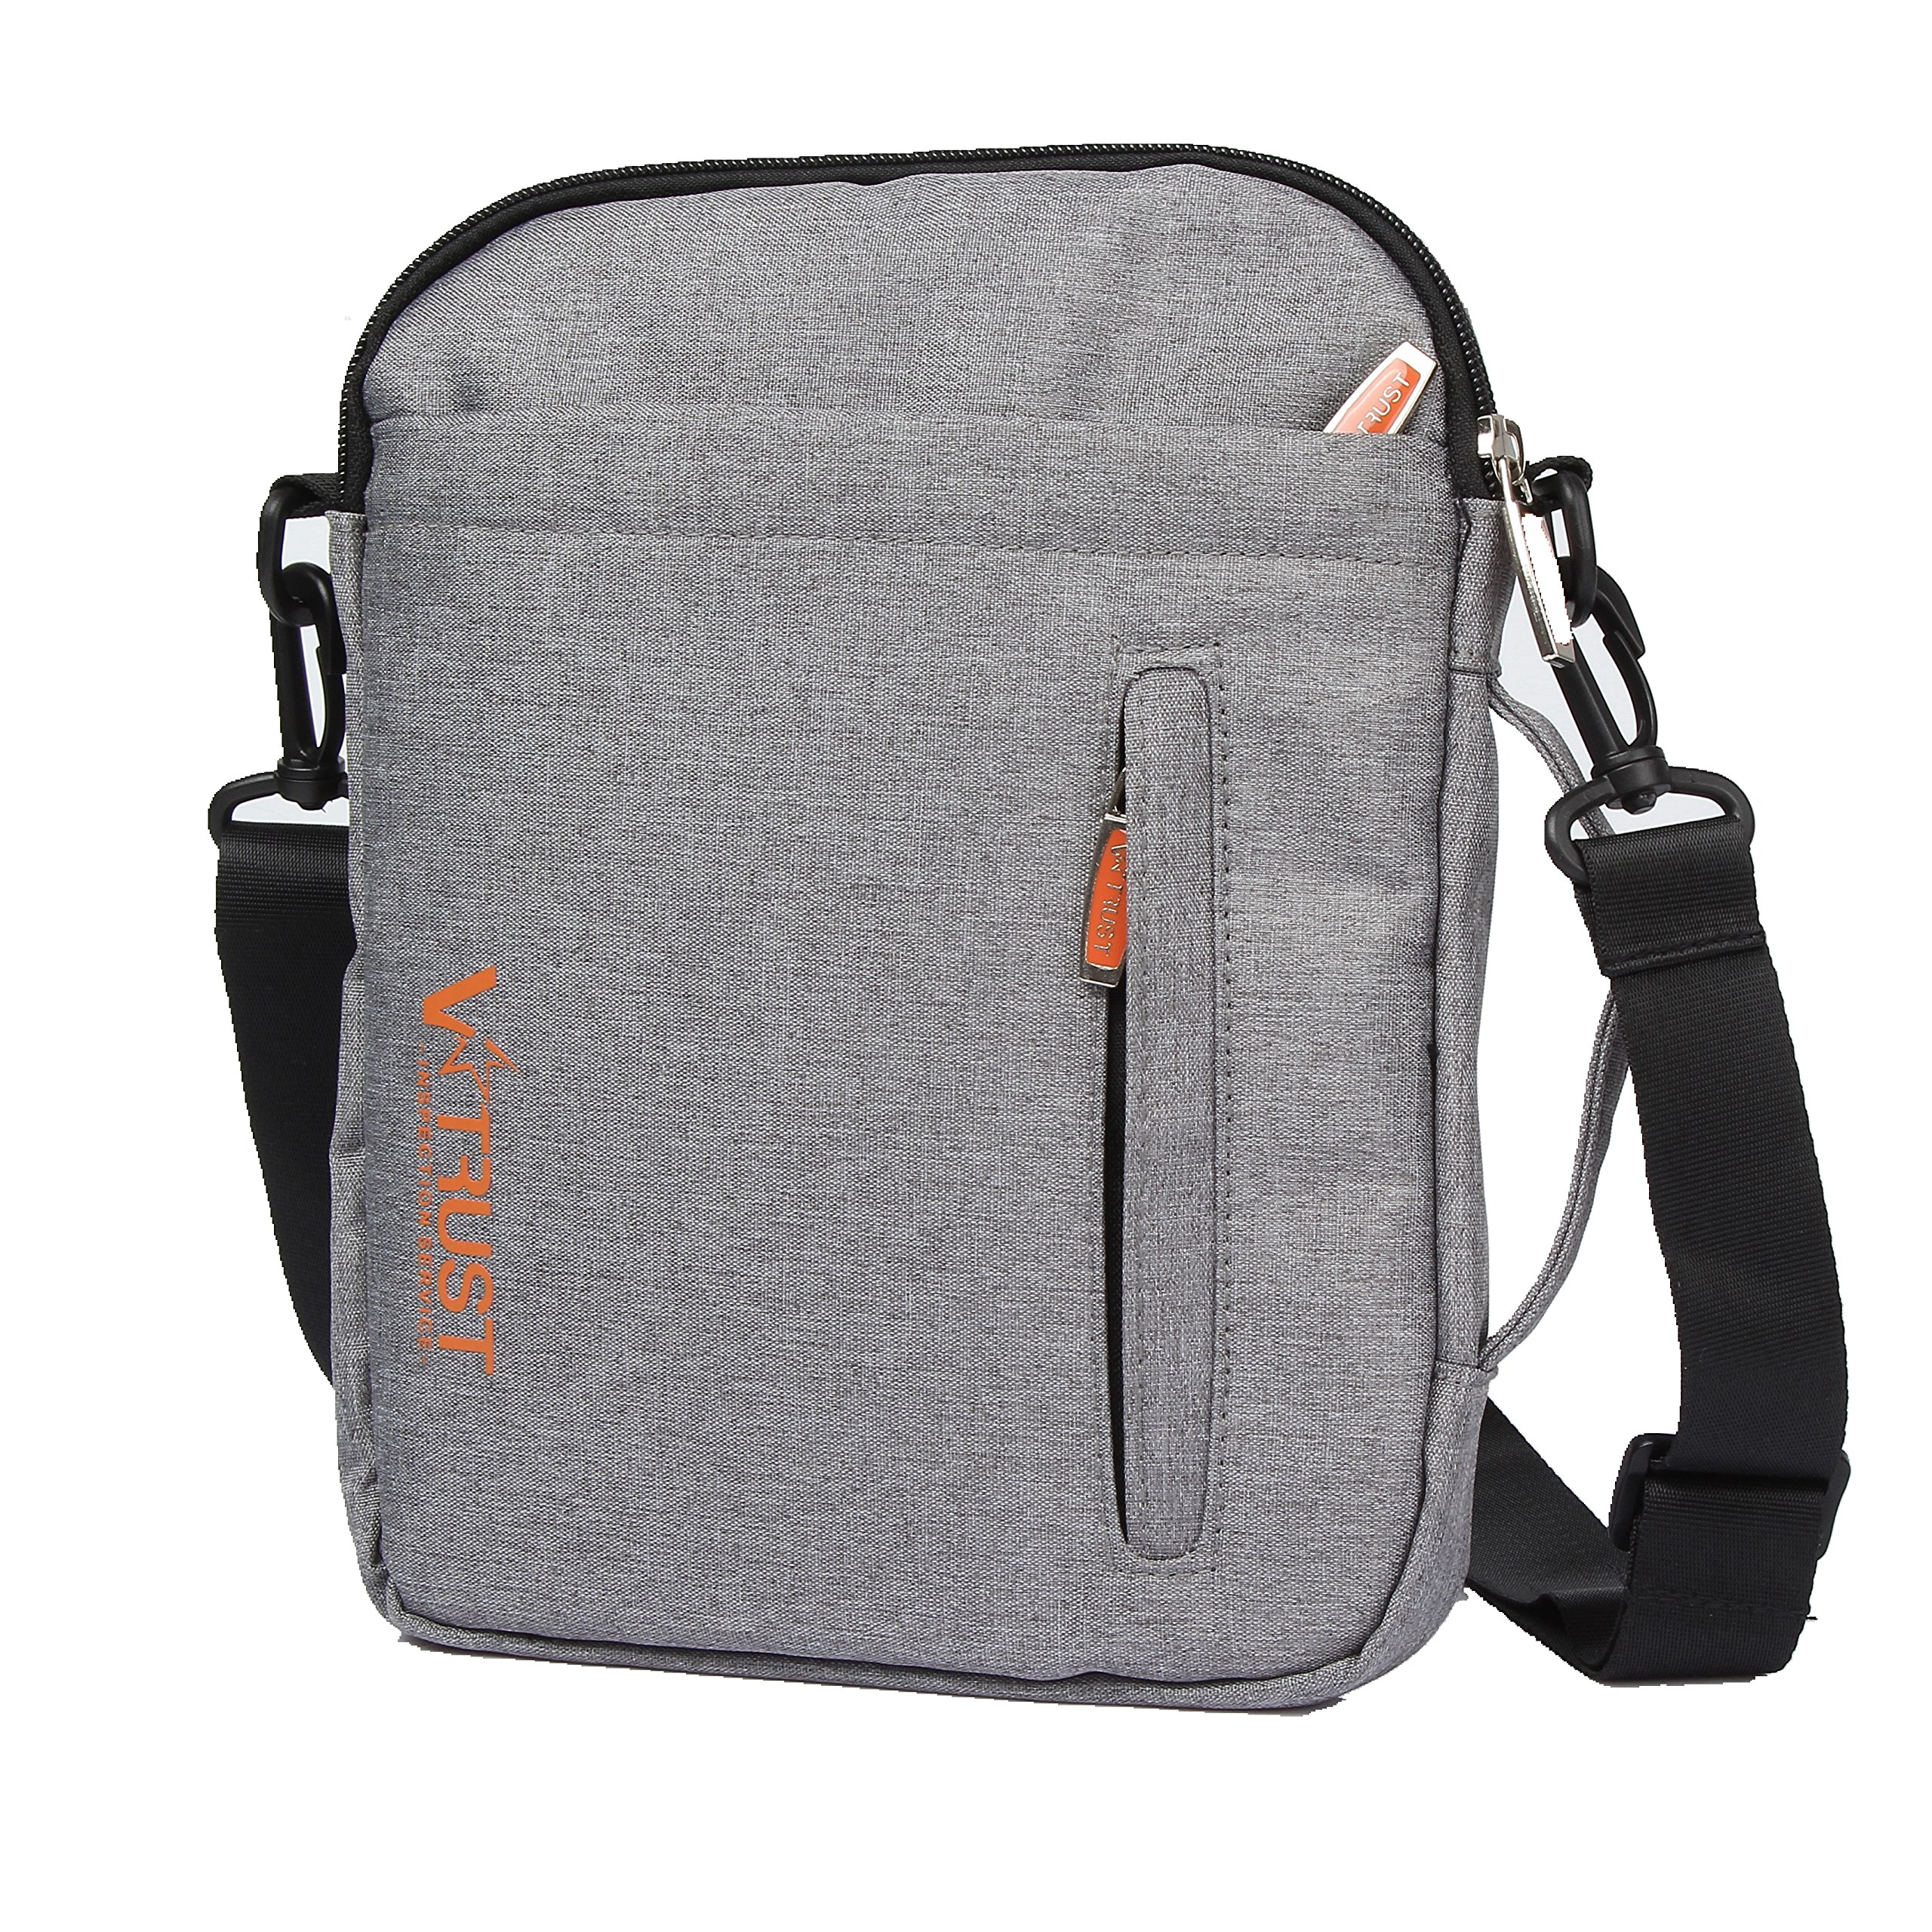 Shoulder Messenger Bag for Men 's Choice Canvas Crossbody Backpack Portable Purse